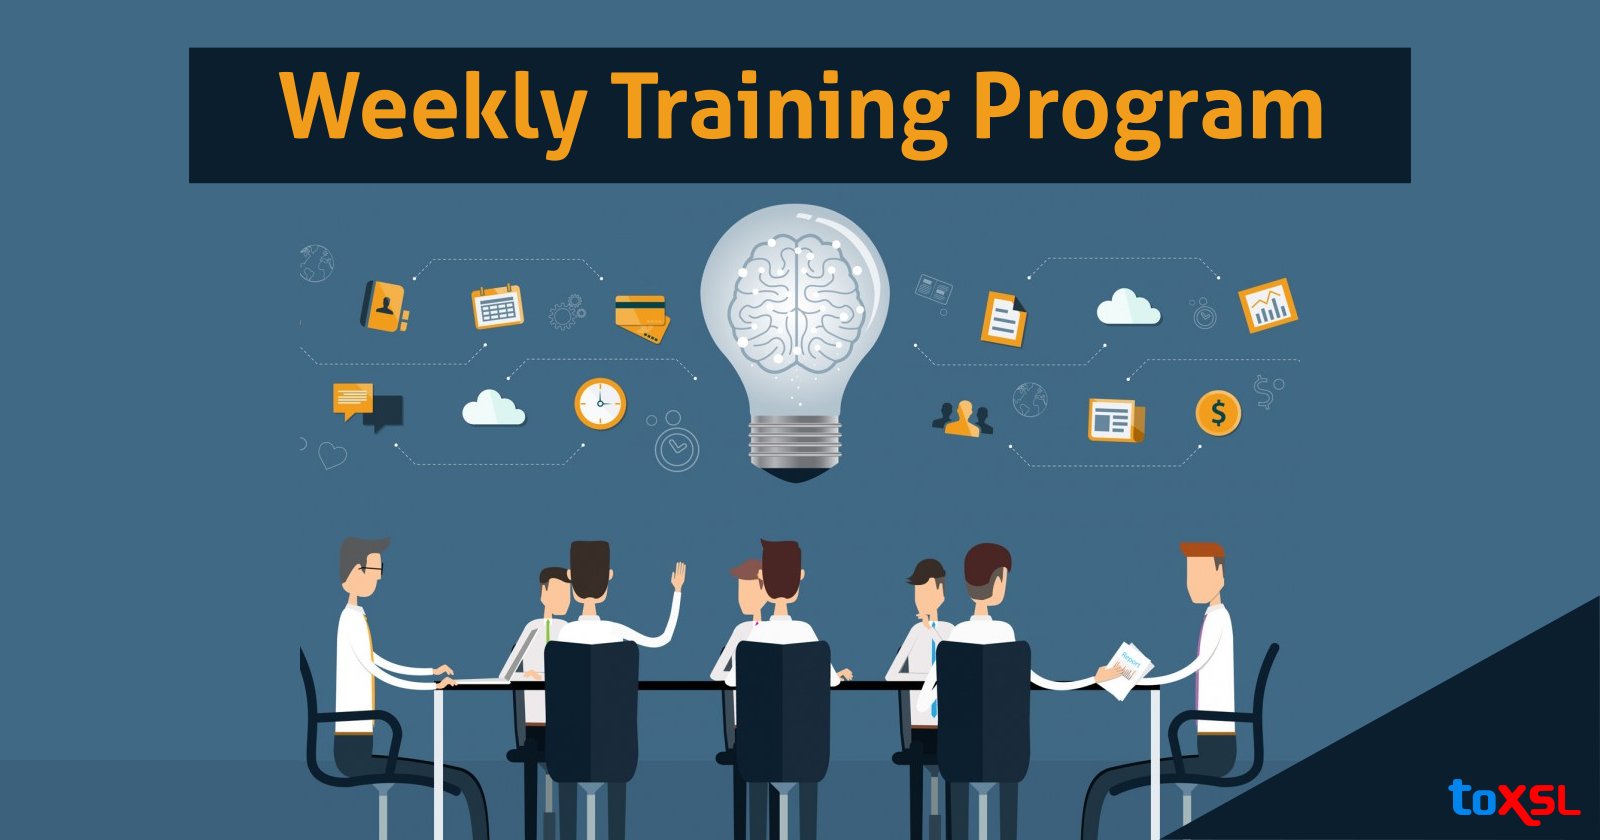 Why ToXSL has Weekly Training Program?